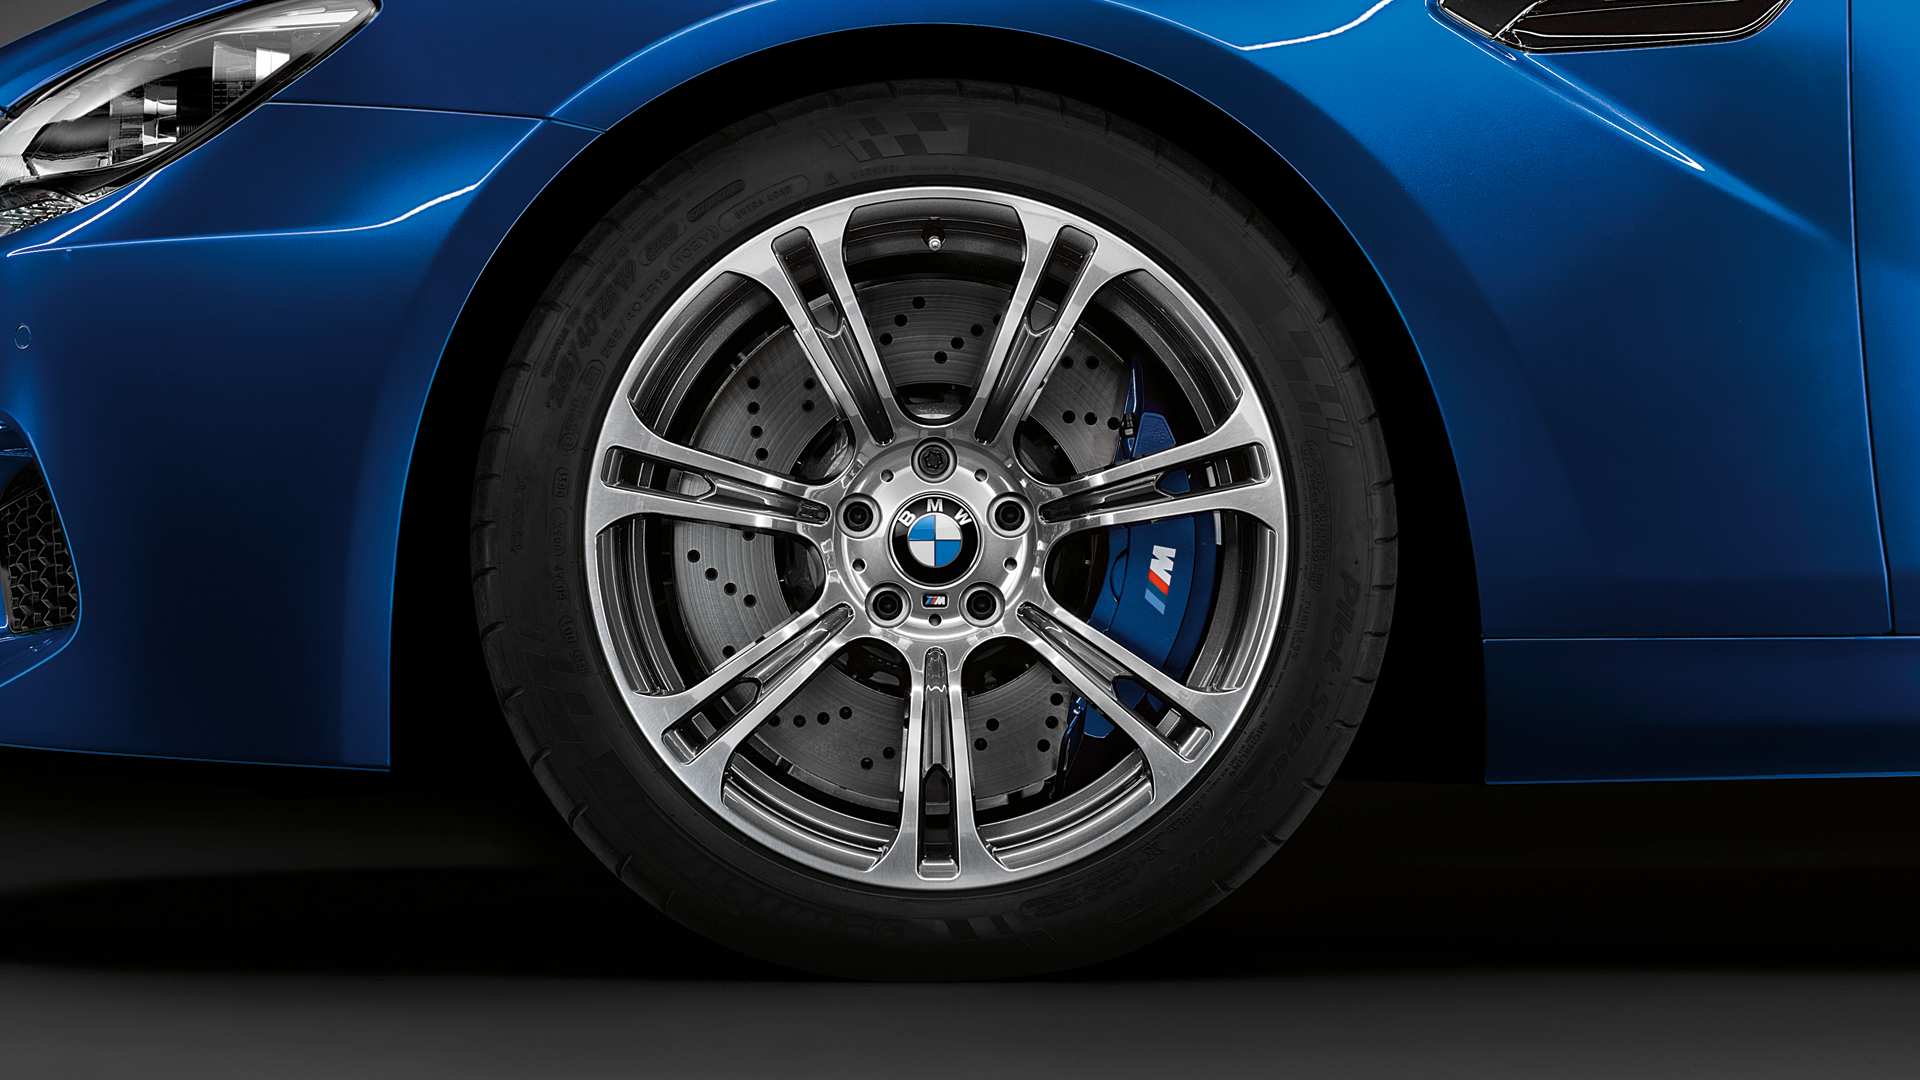 BMW M6 convertible image gallery 1 1920